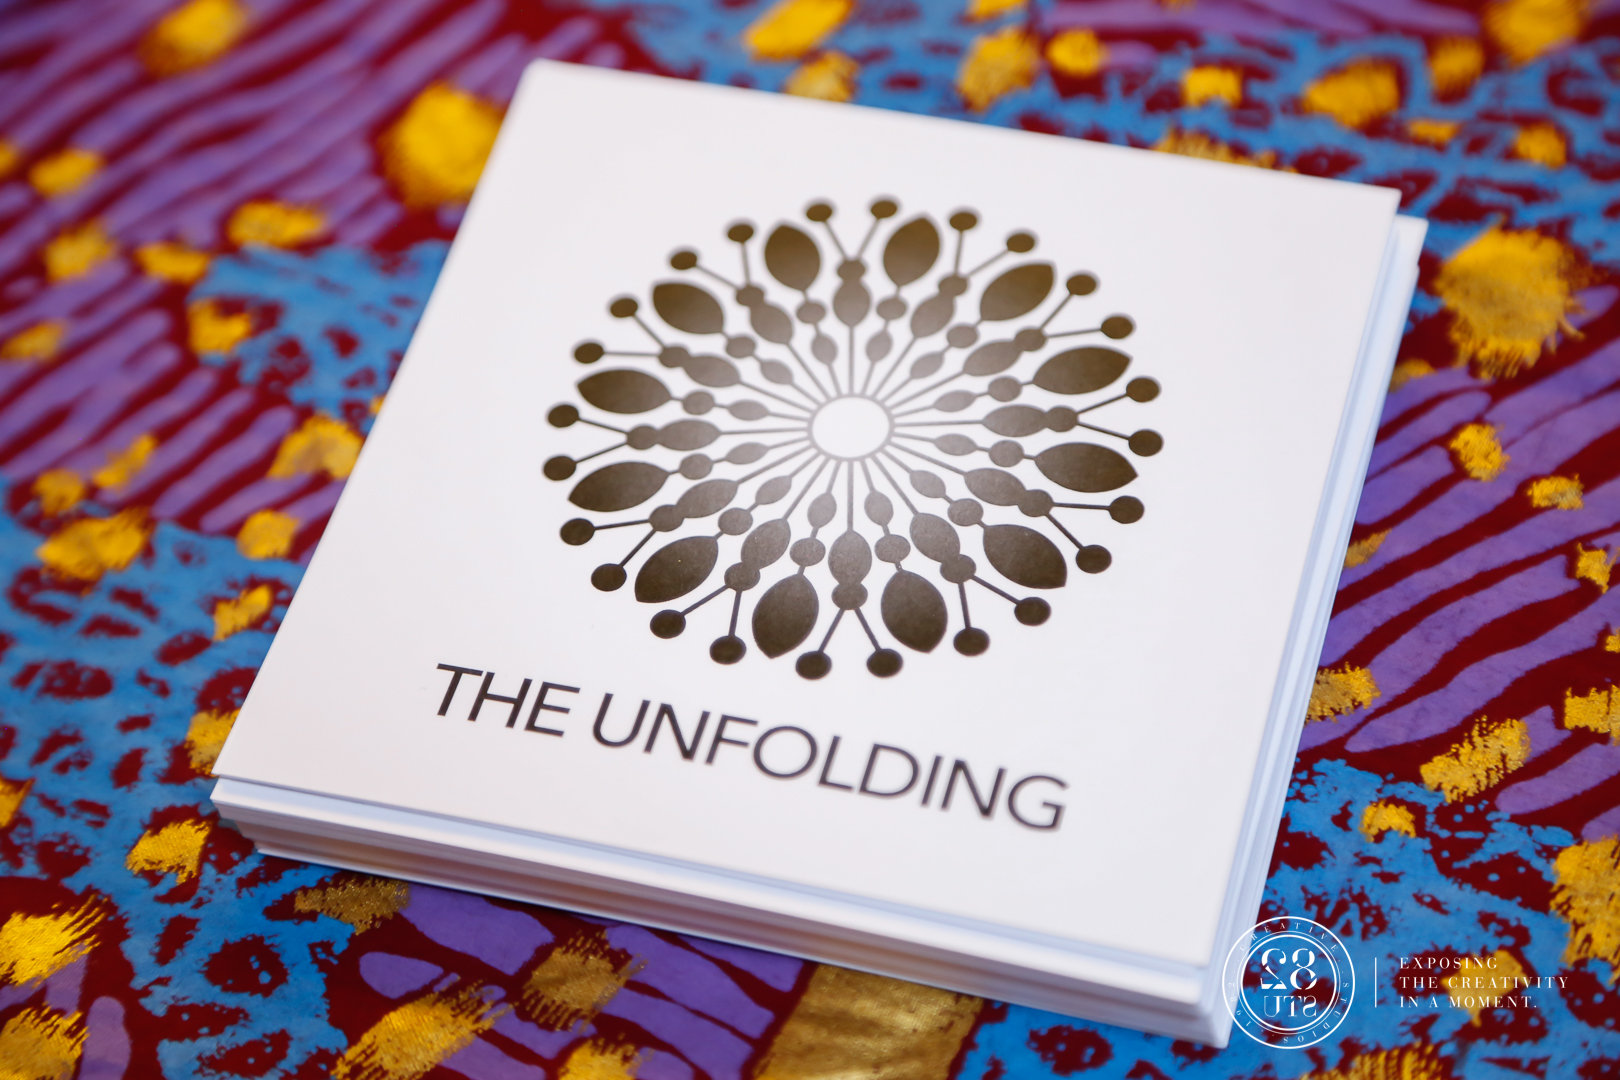 The Unfolding-The Unfolding-0039.jpg